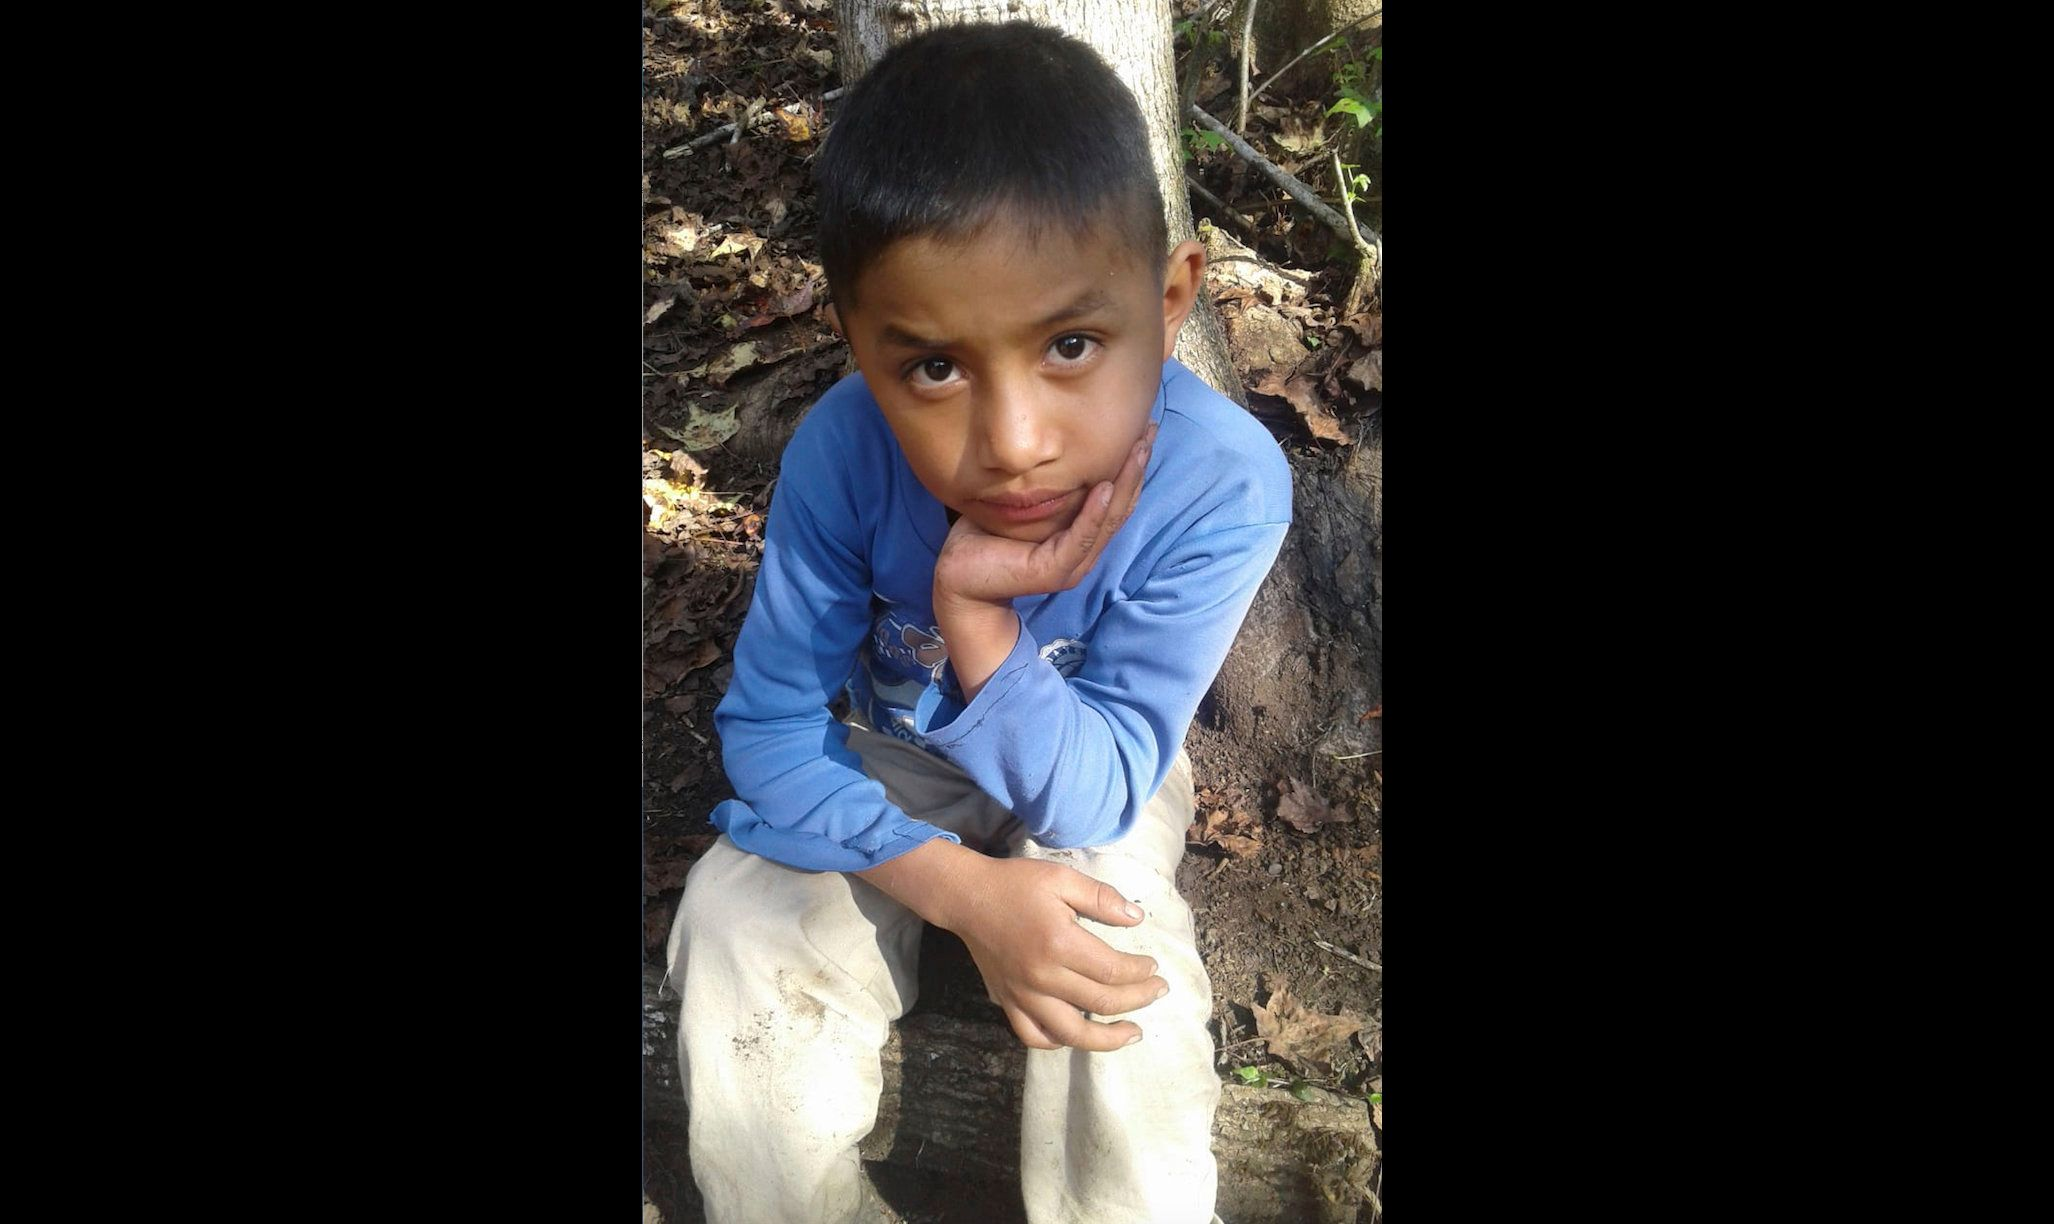 Images where Guatemalan boy, 8, died in US custody